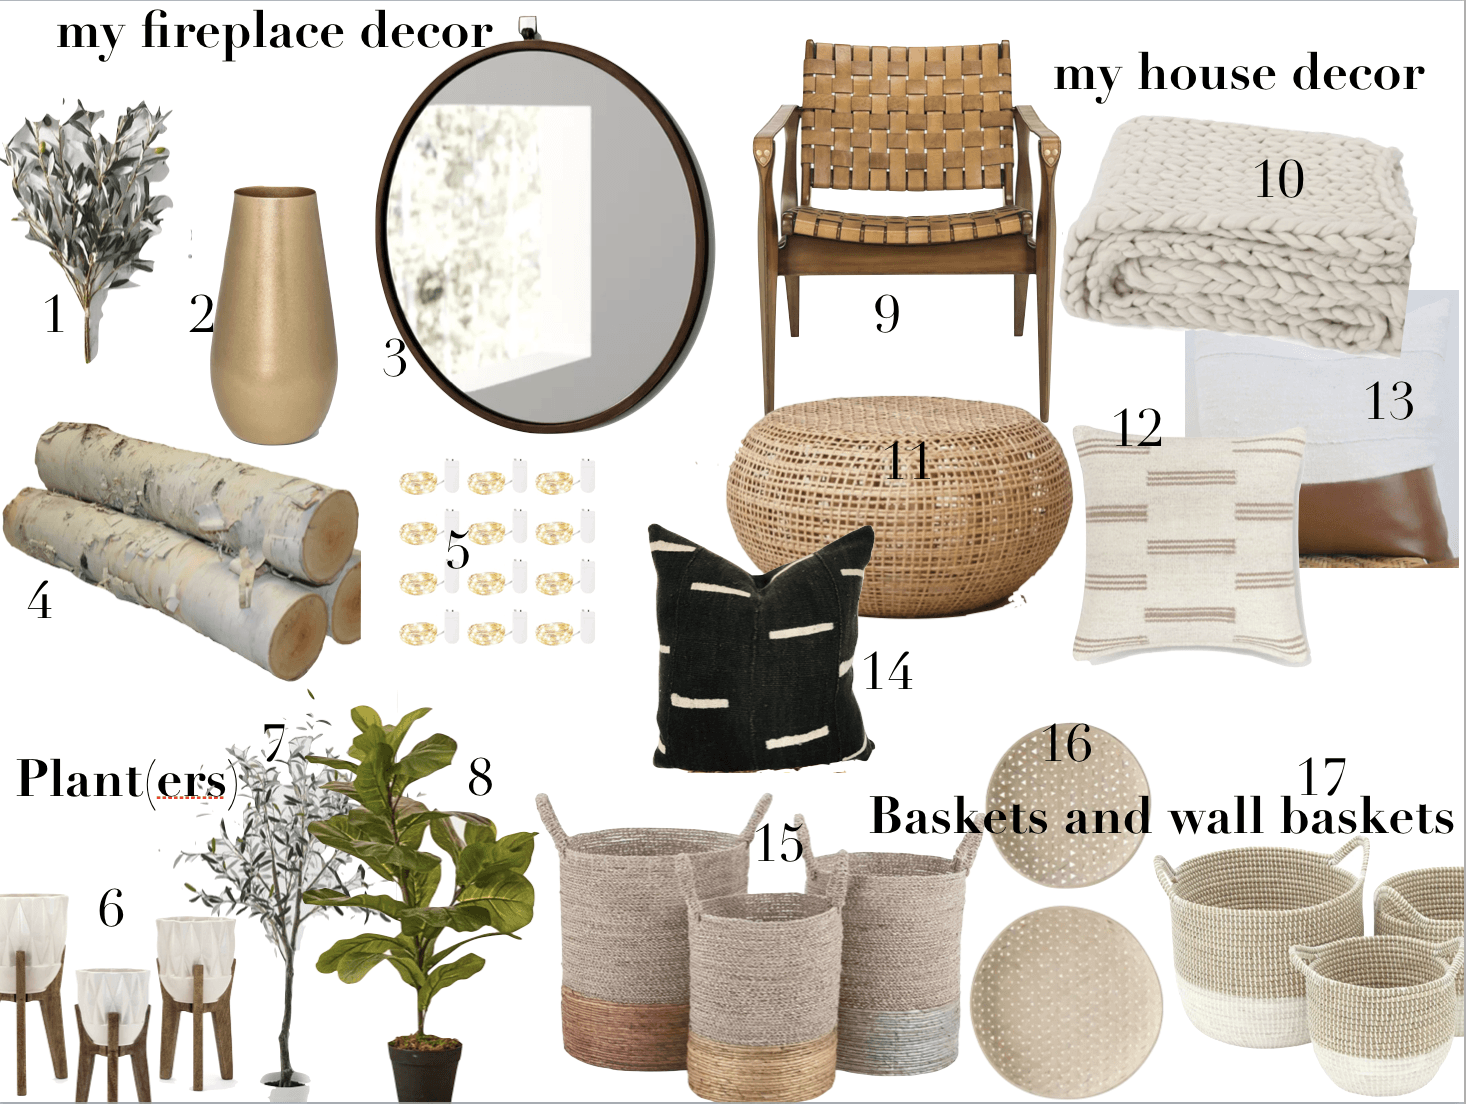 Favorite Home Decor Gifts and Accessories Black Friday Deals!